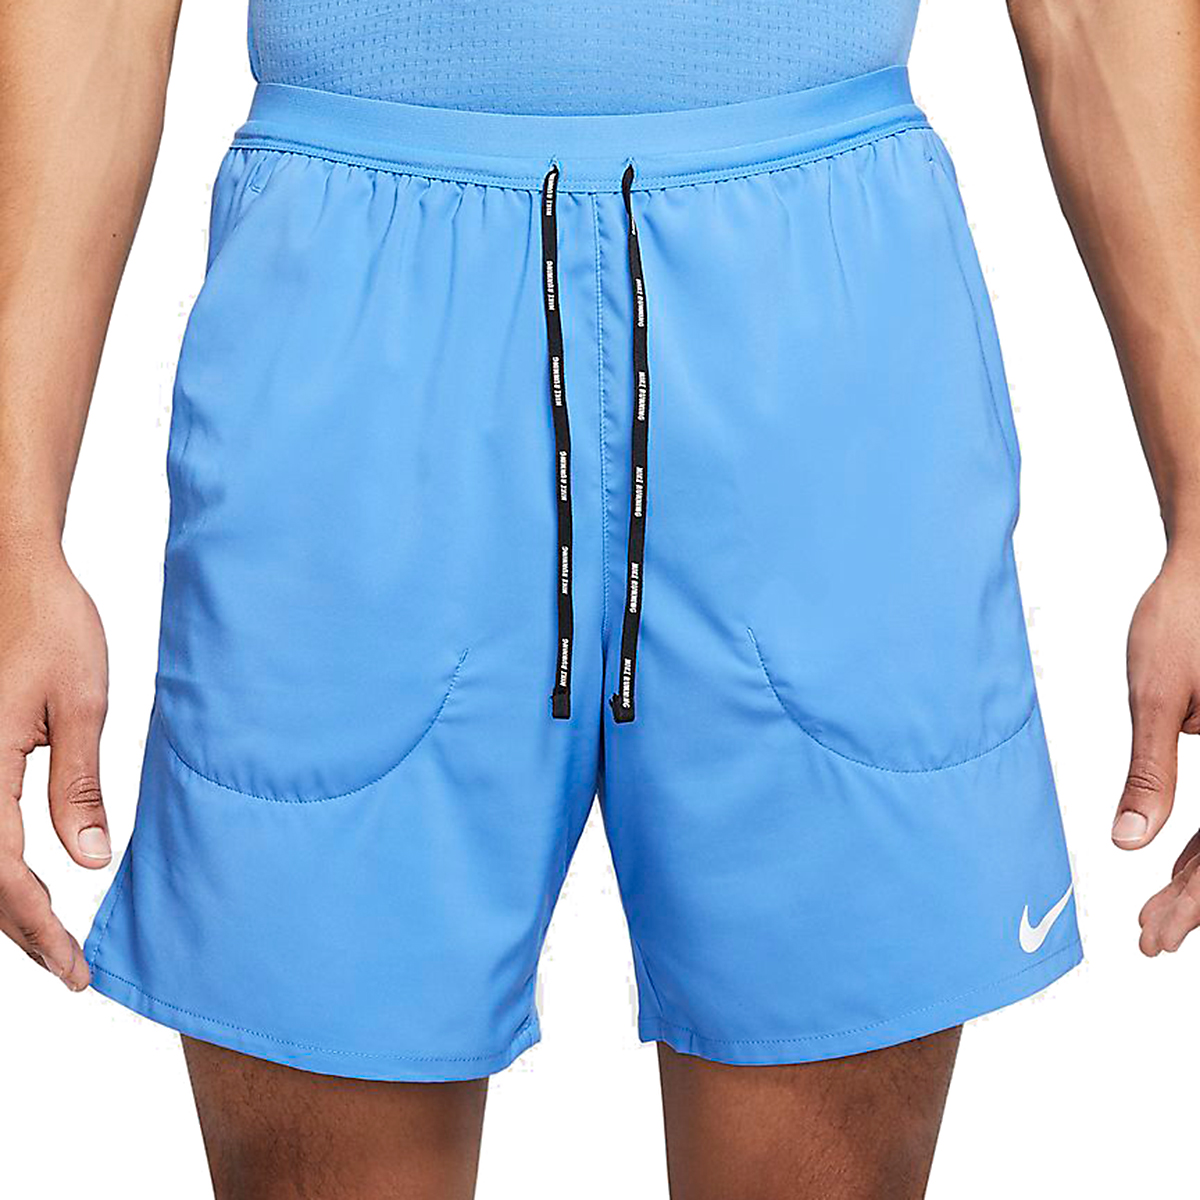 Men's Nike Flex Stride 7 Inch 2-in-1 Short  - Color: Pacific Blue - Size: M, Pacific Blue, large, image 2